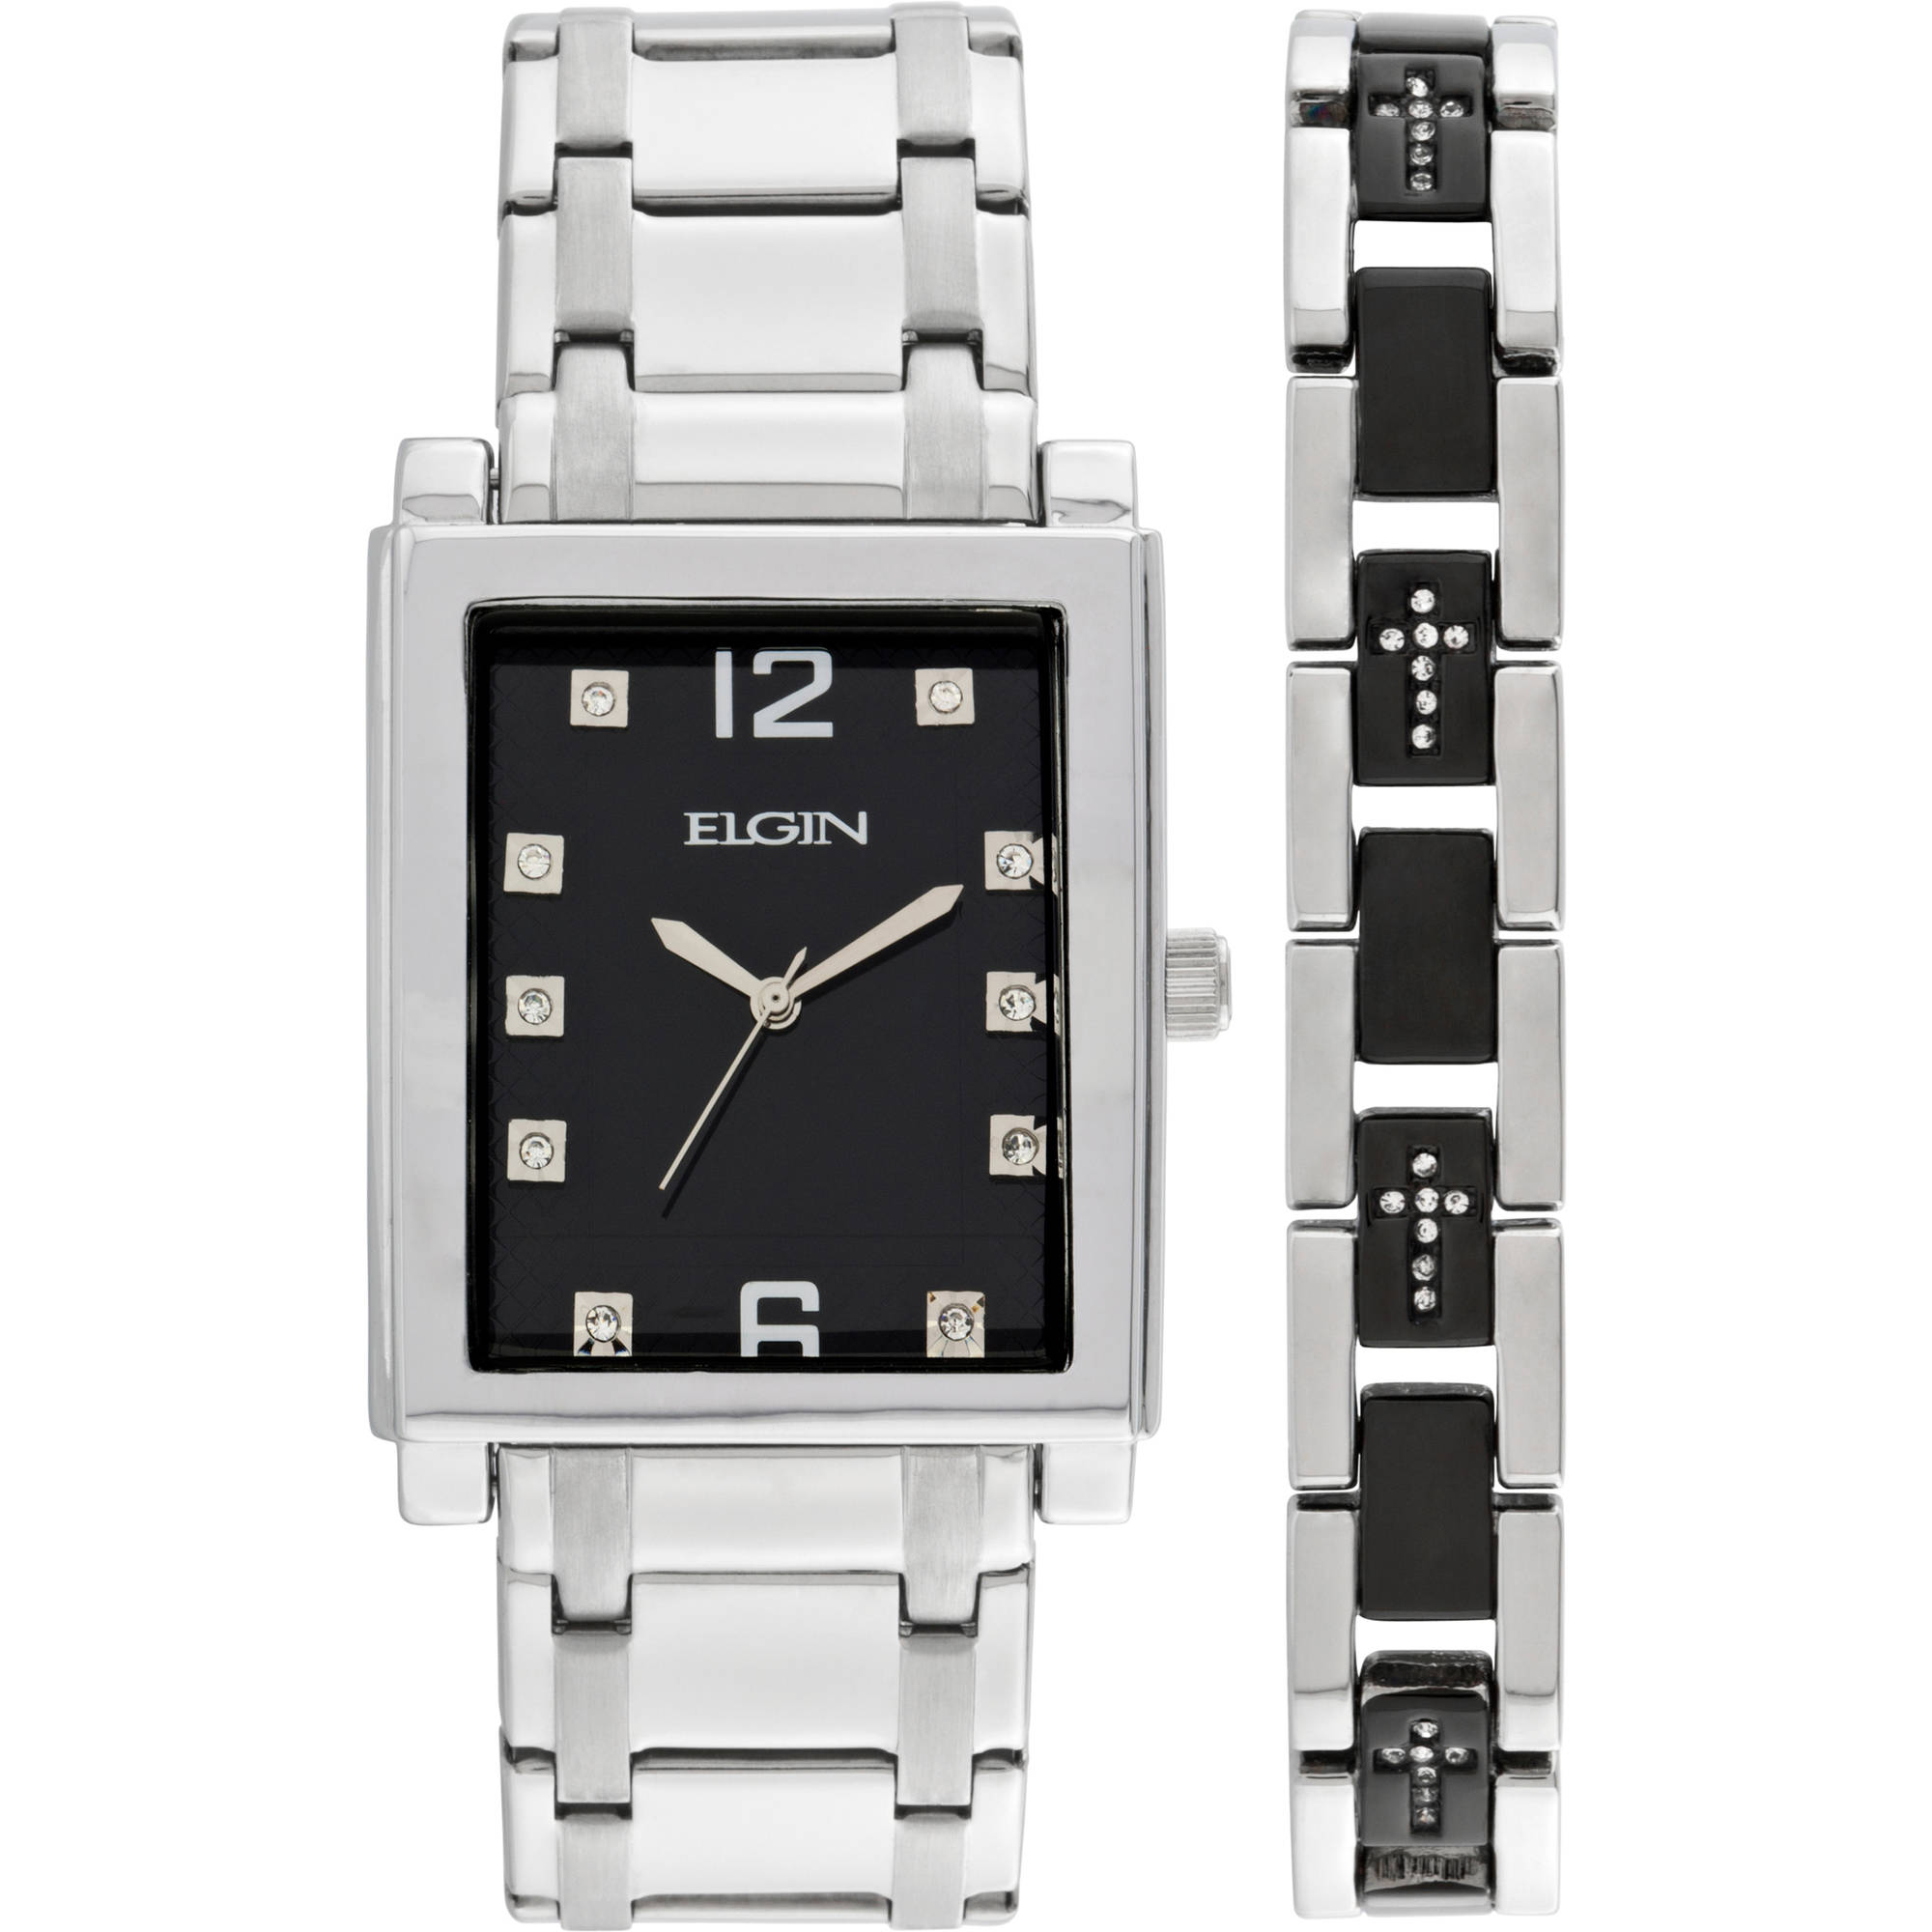 Elgin Men's Crystal Accent Silver-Tone and Black Watch and Cross Bracelet Set by Mz Berger